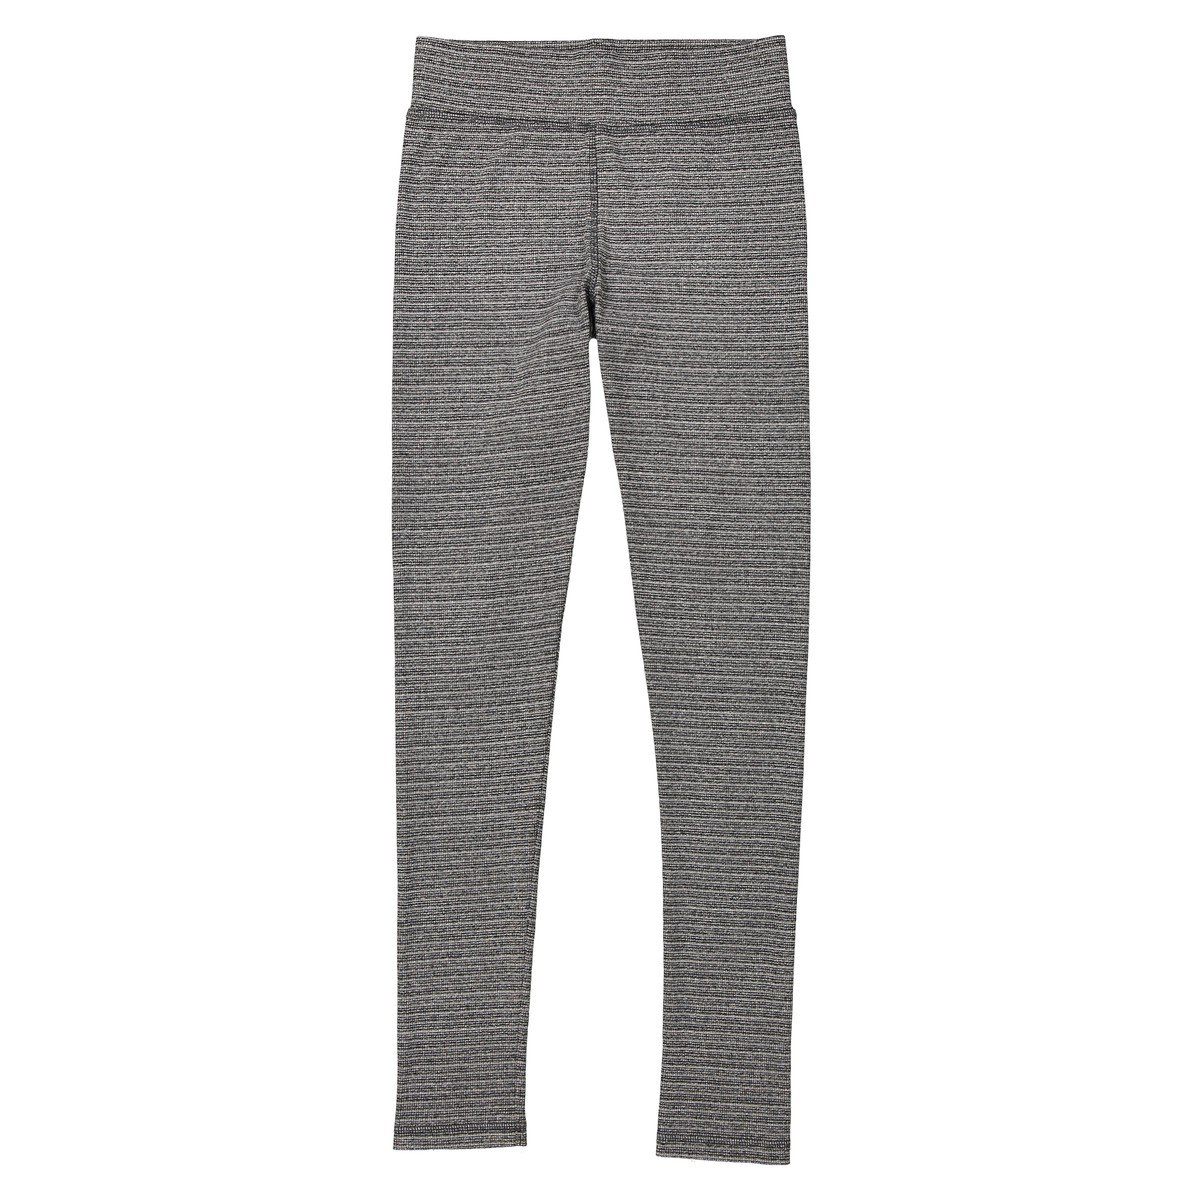 La Redoute Collections Big Girls Leggings, 10-16 Years Grey Size 14 Years - 61 in.